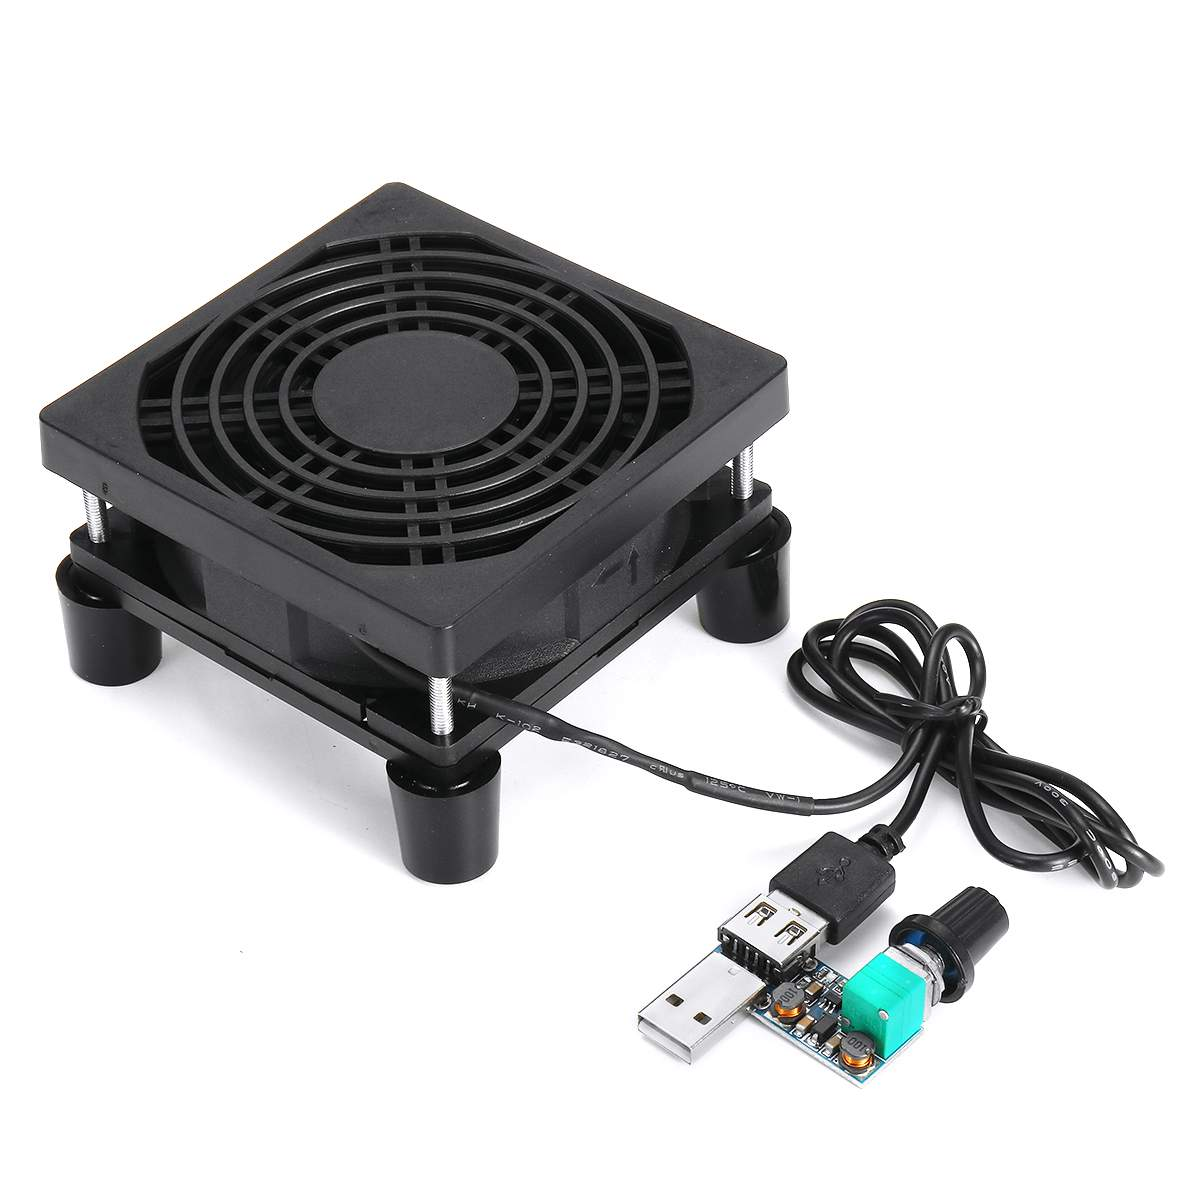 DIY 9cm Router Cooling Fan Rack Speed Controller PC Cooler TV Box Wireless Cooling Fan Quiet DC 5V USB Fan With Protective Net